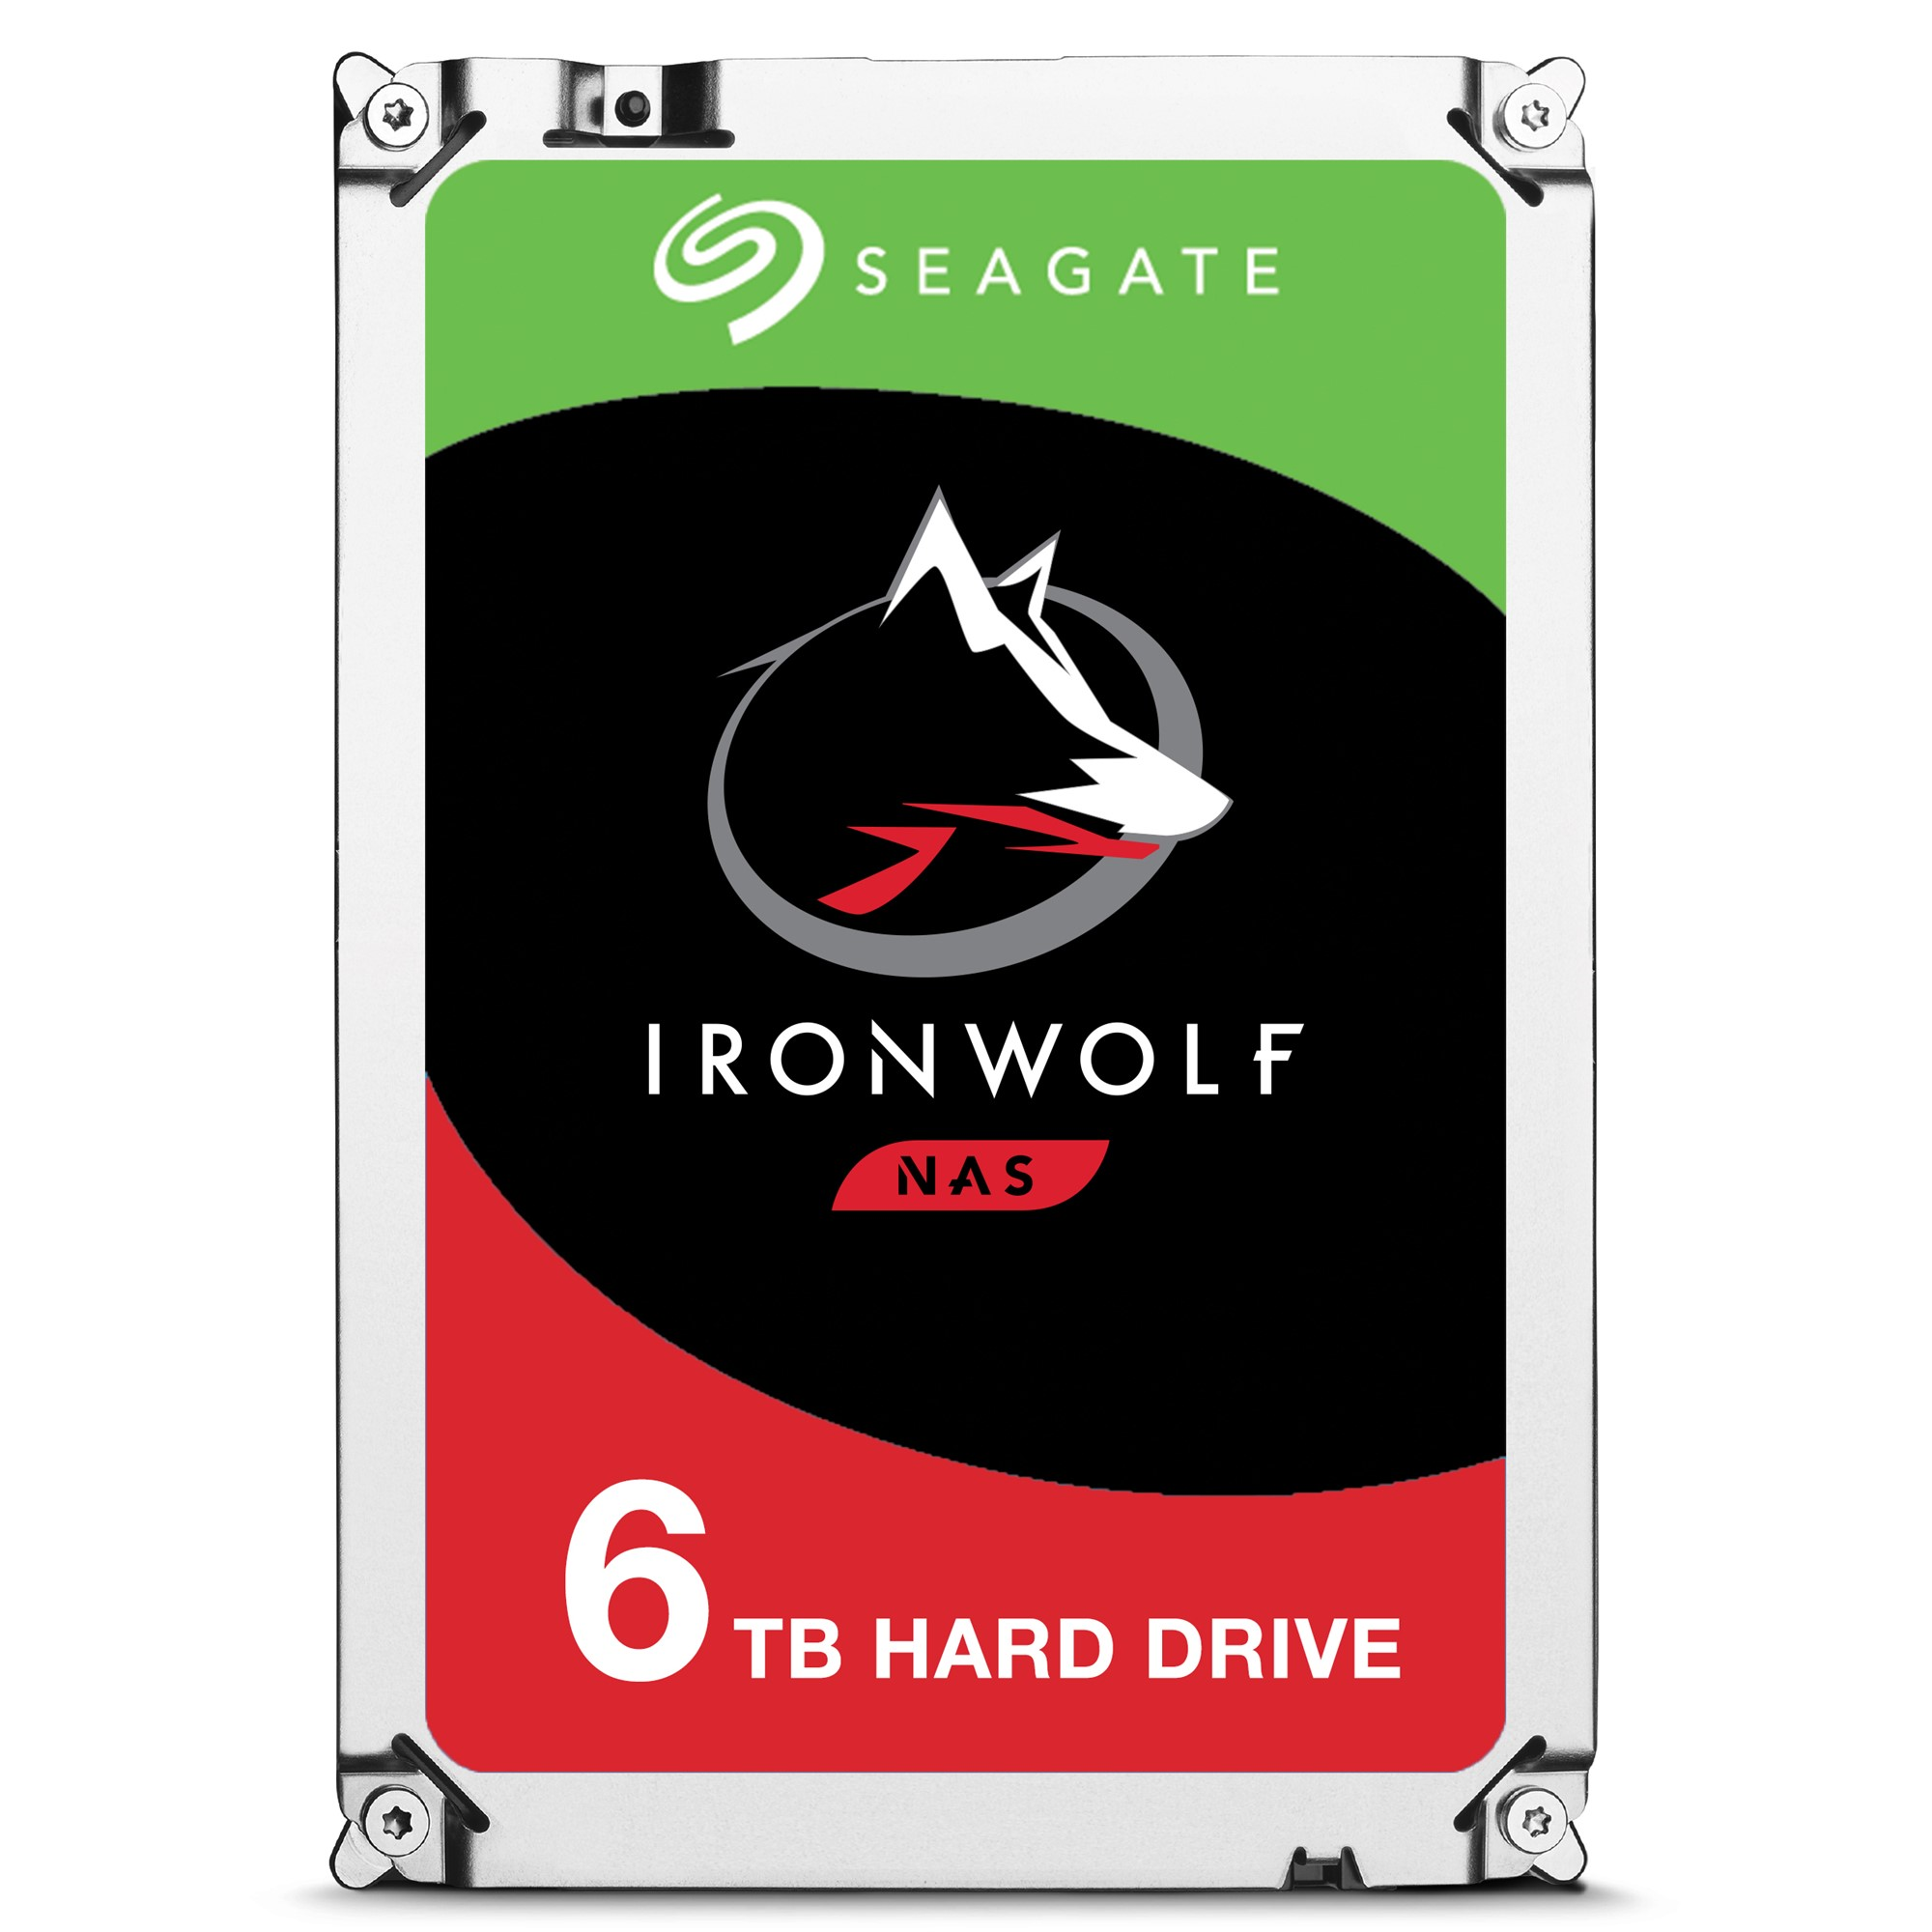 SEAGATE IRONWOLF ST6000VN0033 6000GB SERIAL ATA III INTERNAL HARD DRIVE